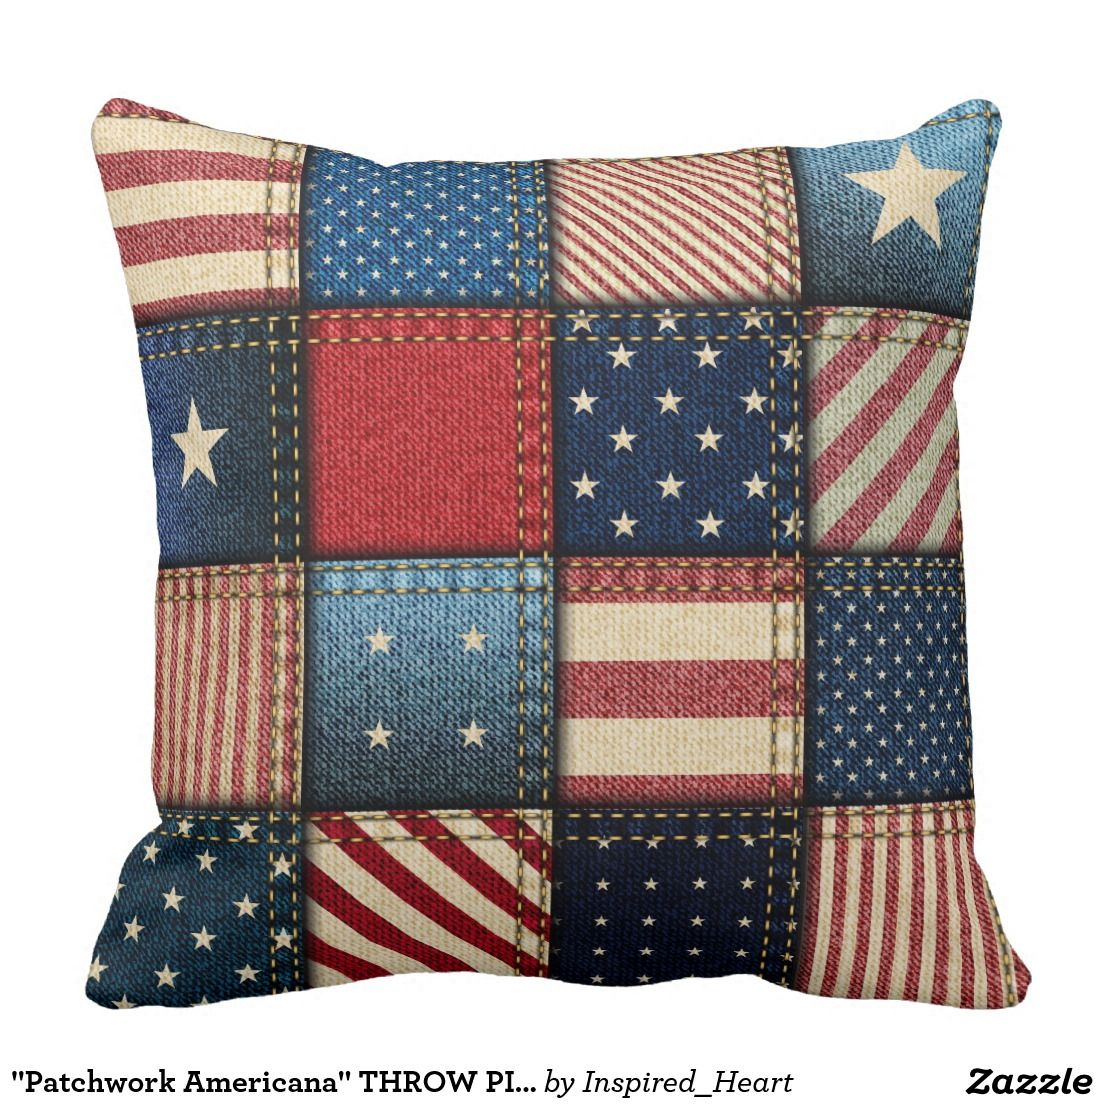 Patchwork Americana  THROW PILLOW   Zazzle com is part of Patriotic pillow, Throw pillows, Patchwork pillow, Pillows, Sewing pillows, Pillow covers - THROW PILLOW 20X20 Coordinating Home Decor Faux Denim Patchwork Americana Theme Distressed Style CUSTOMIZABLE